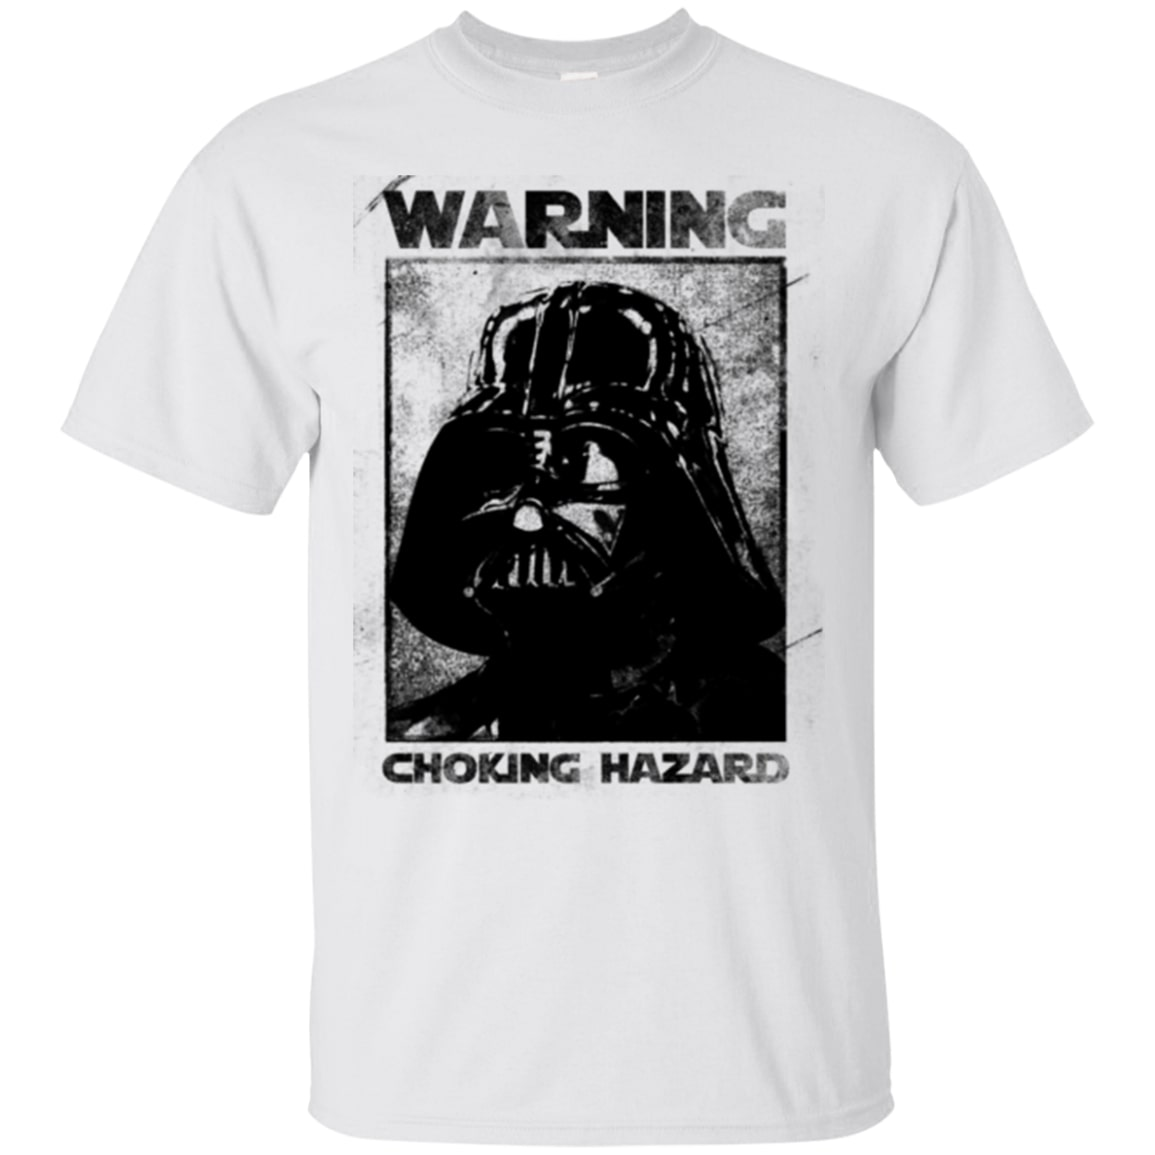 star wars darth vader warning choking hazard tshirt